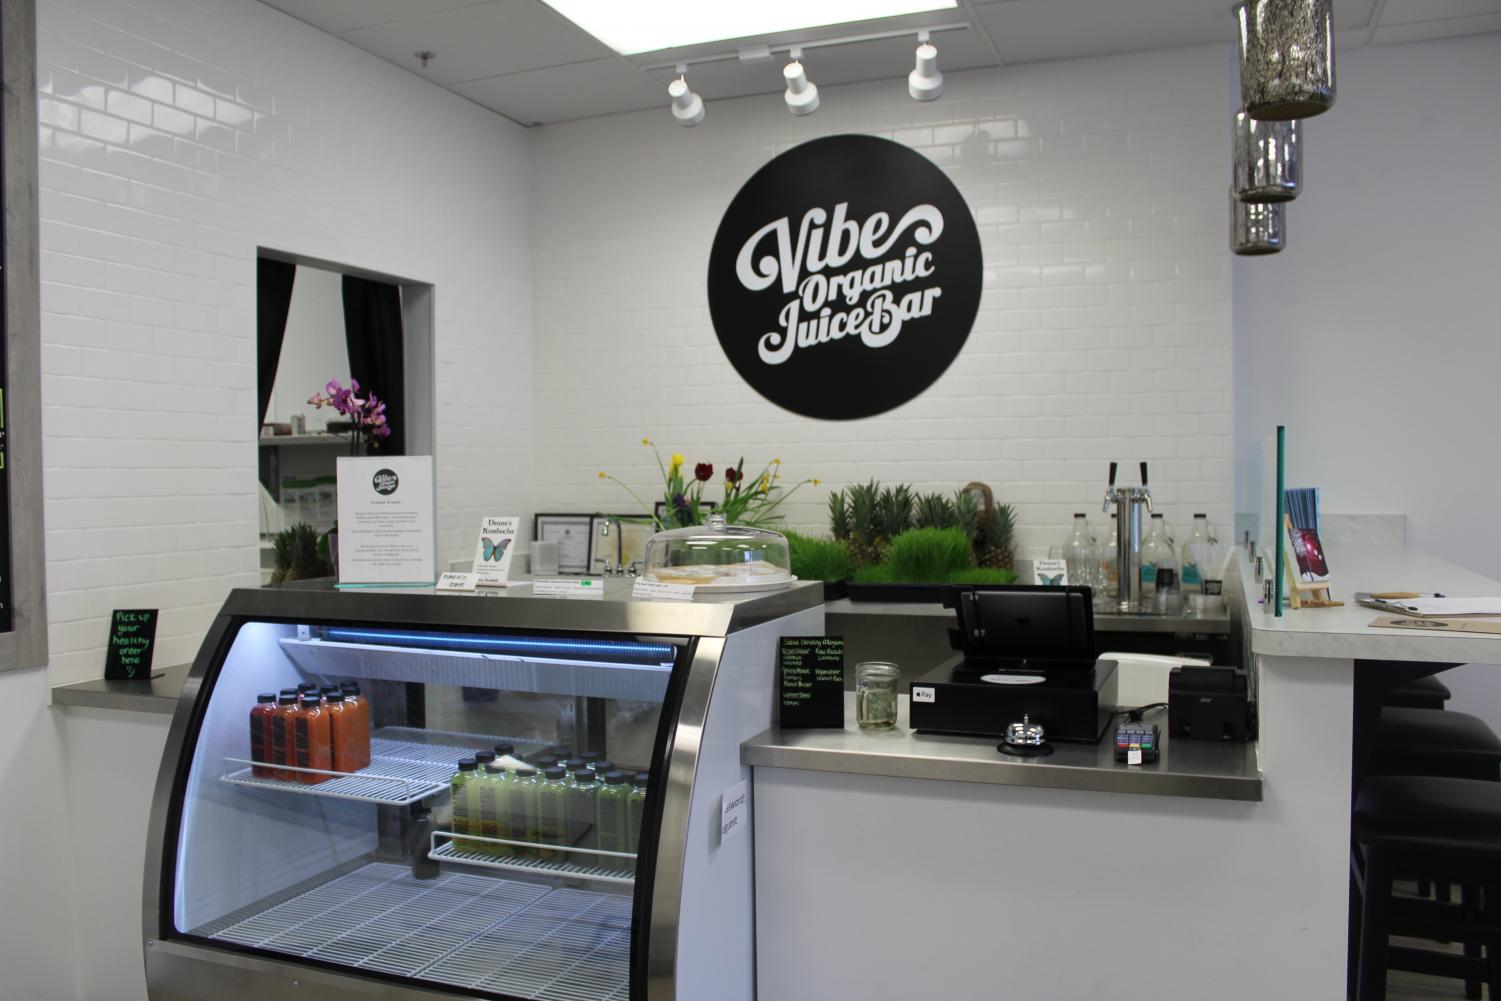 Vibe Organic Juice Bar opened March 17 on excelsior boulevard. They serve a variety of juices, smoothies and snacks.